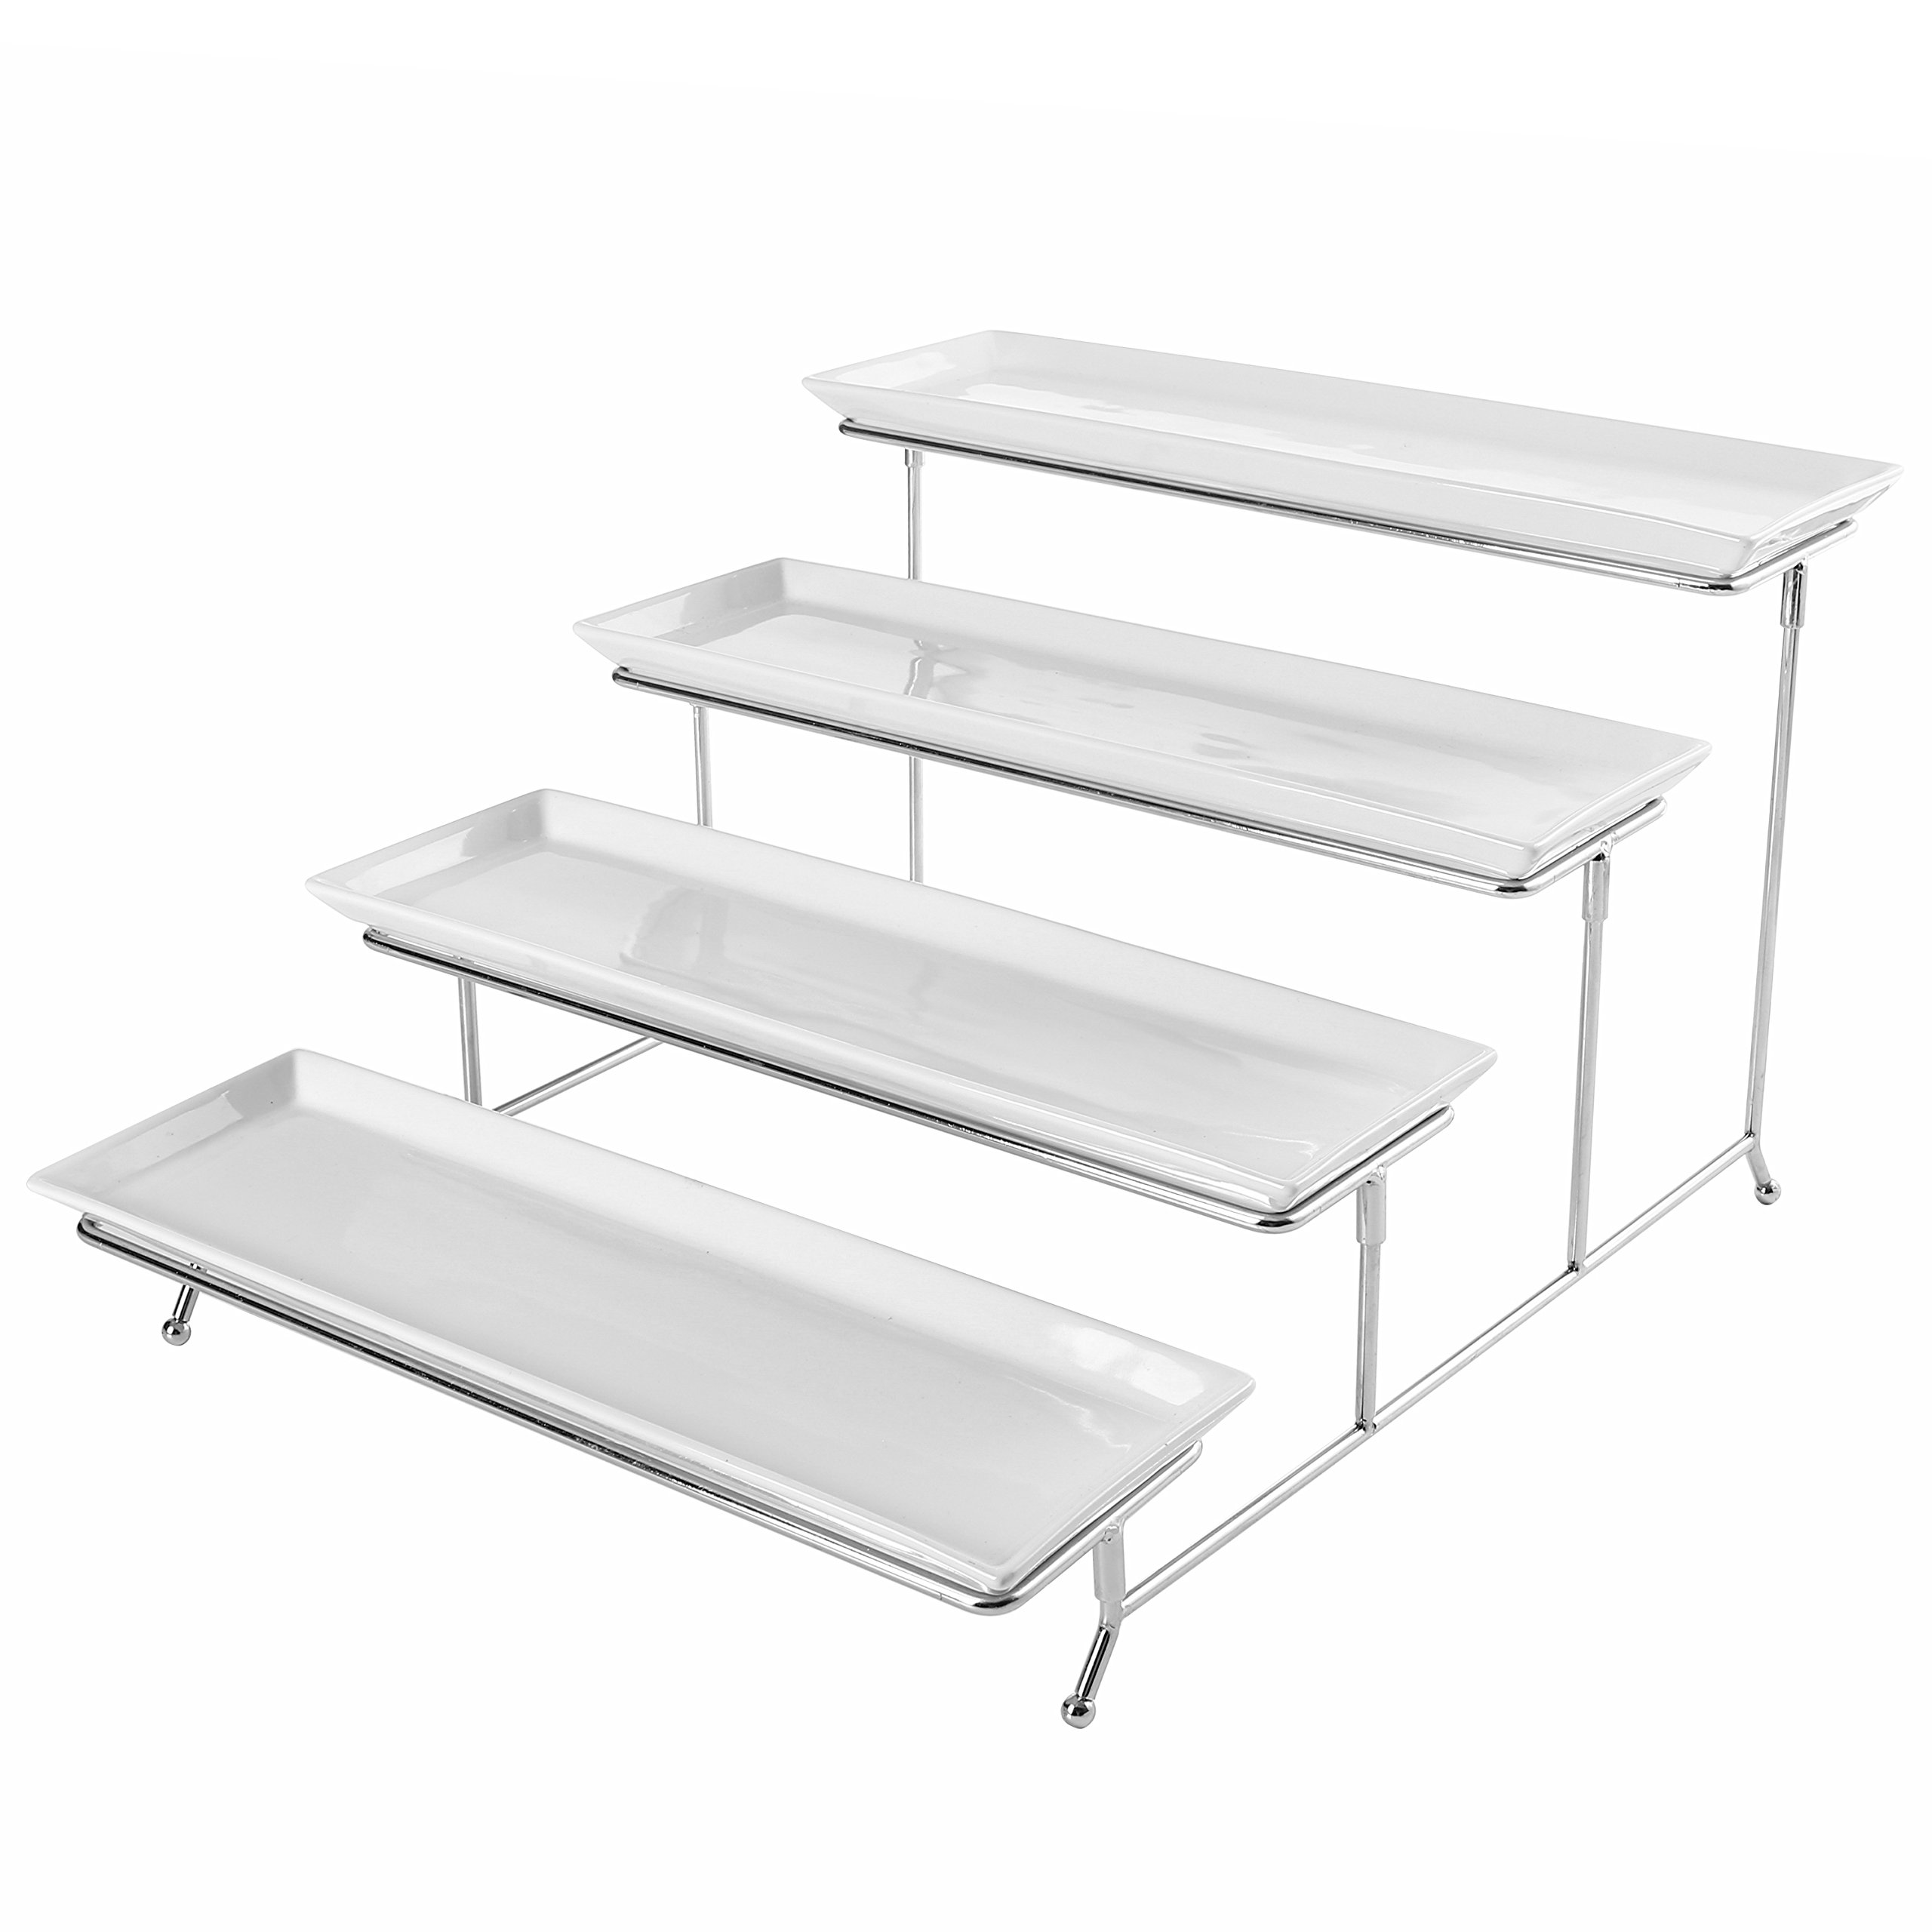 4 Tier White Ceramic Party Serving Platter / Food Display Trays on Chrome Plated Metal Stand